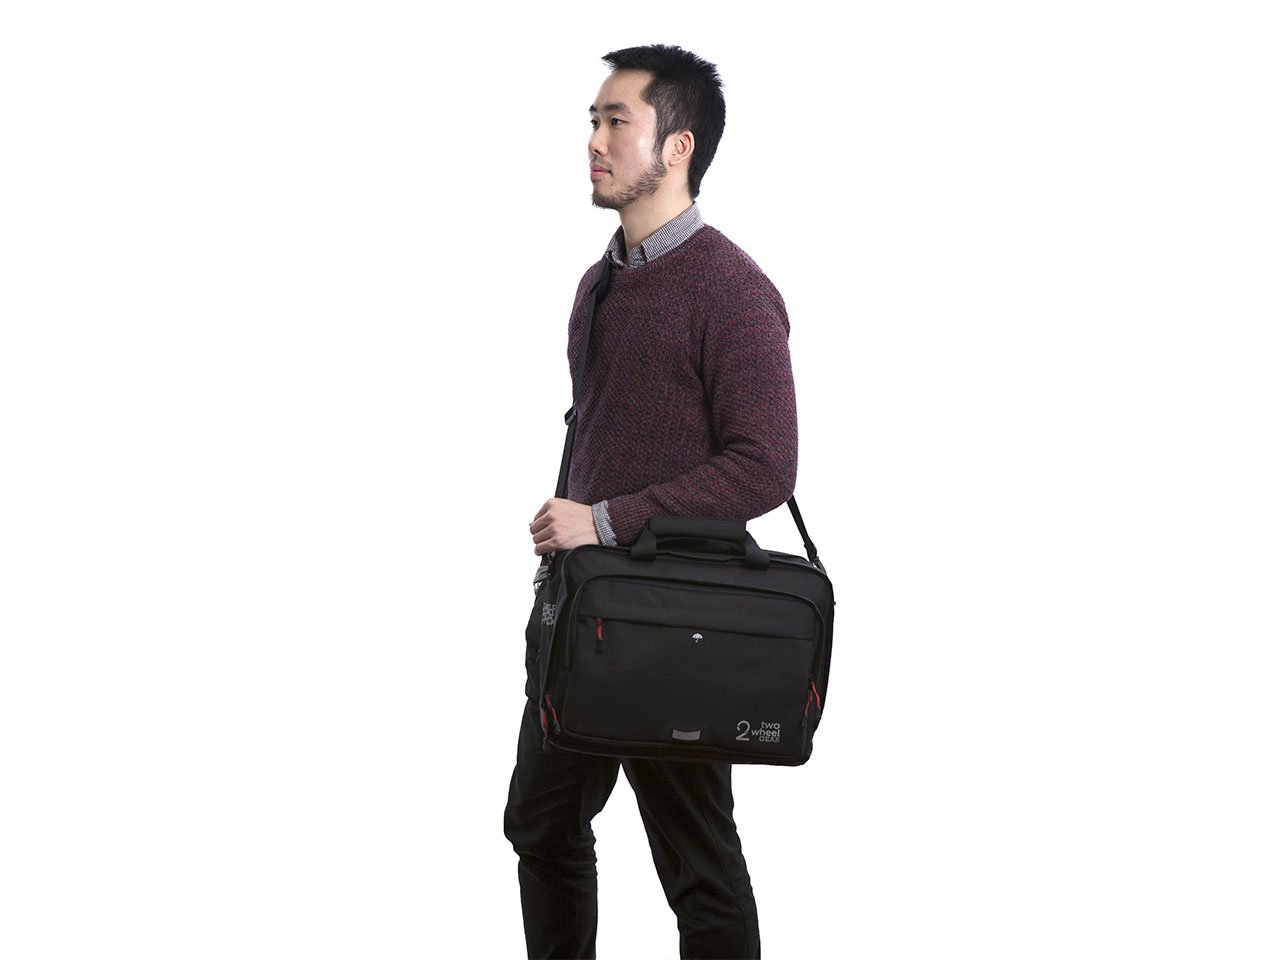 Black - Bike Bags - Pannier Briefcase Convertible (2018) - Man